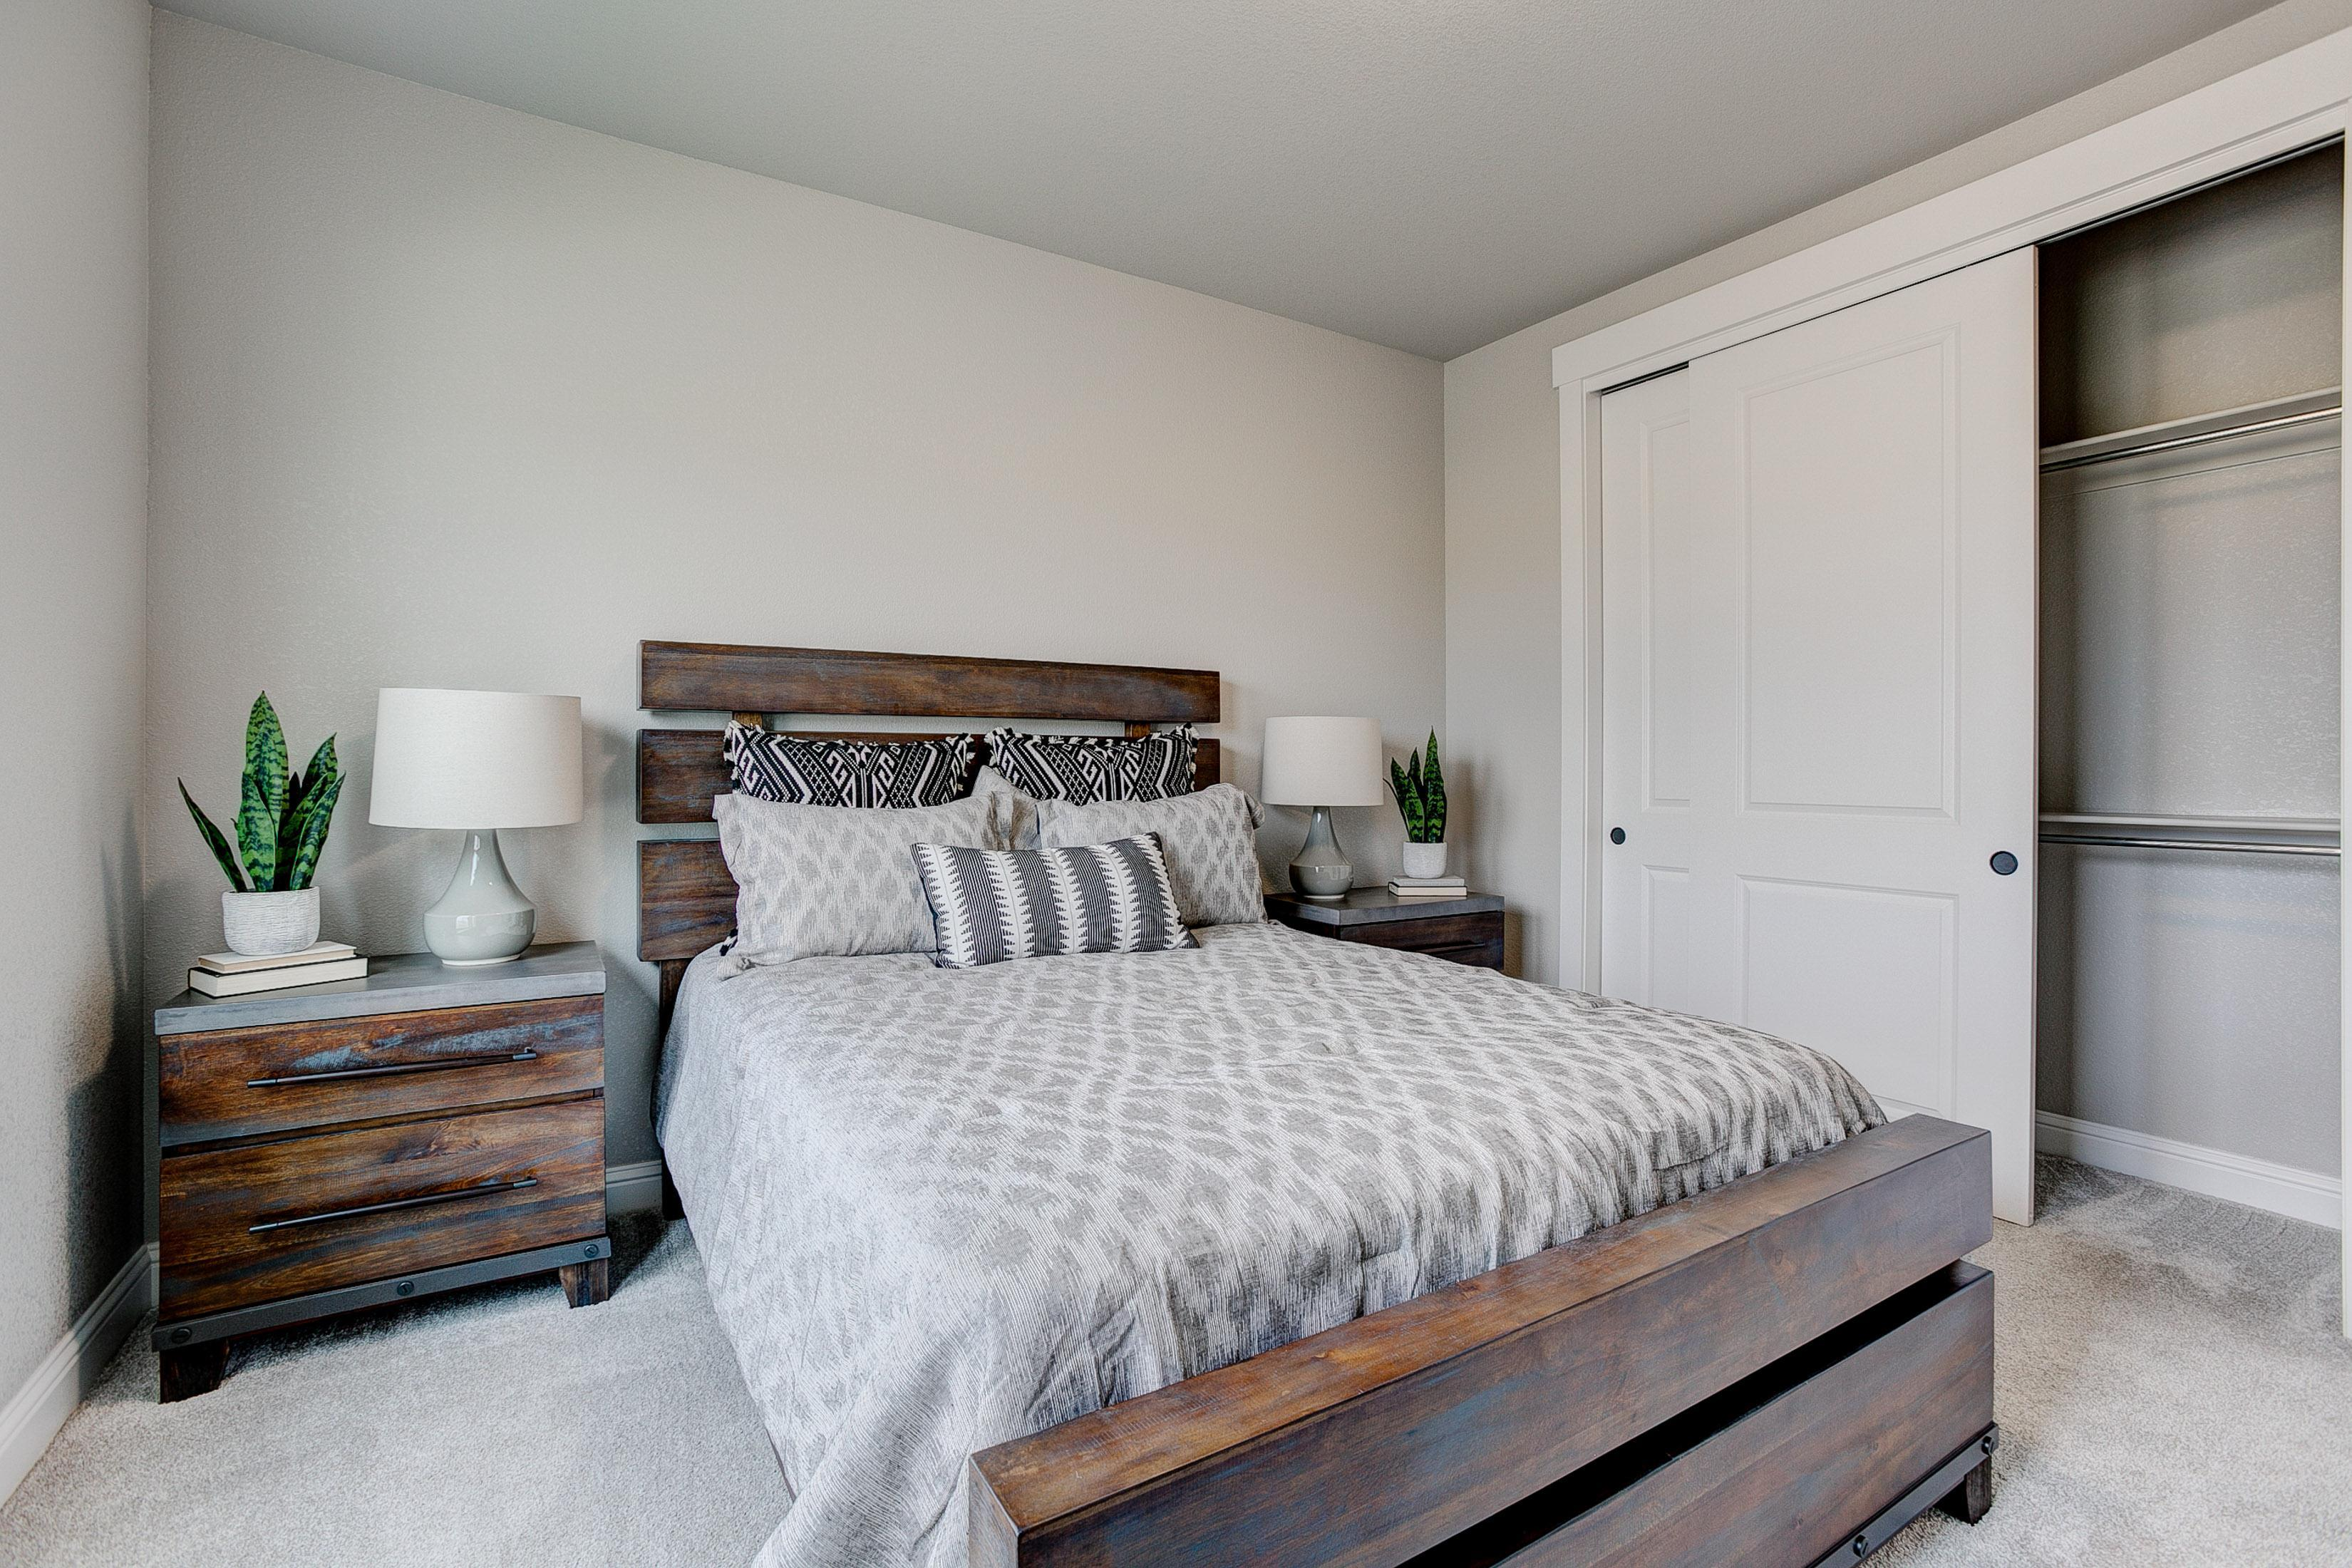 Bedroom featured in the Summerlin By Landmark Homes  in Fort Collins-Loveland, CO